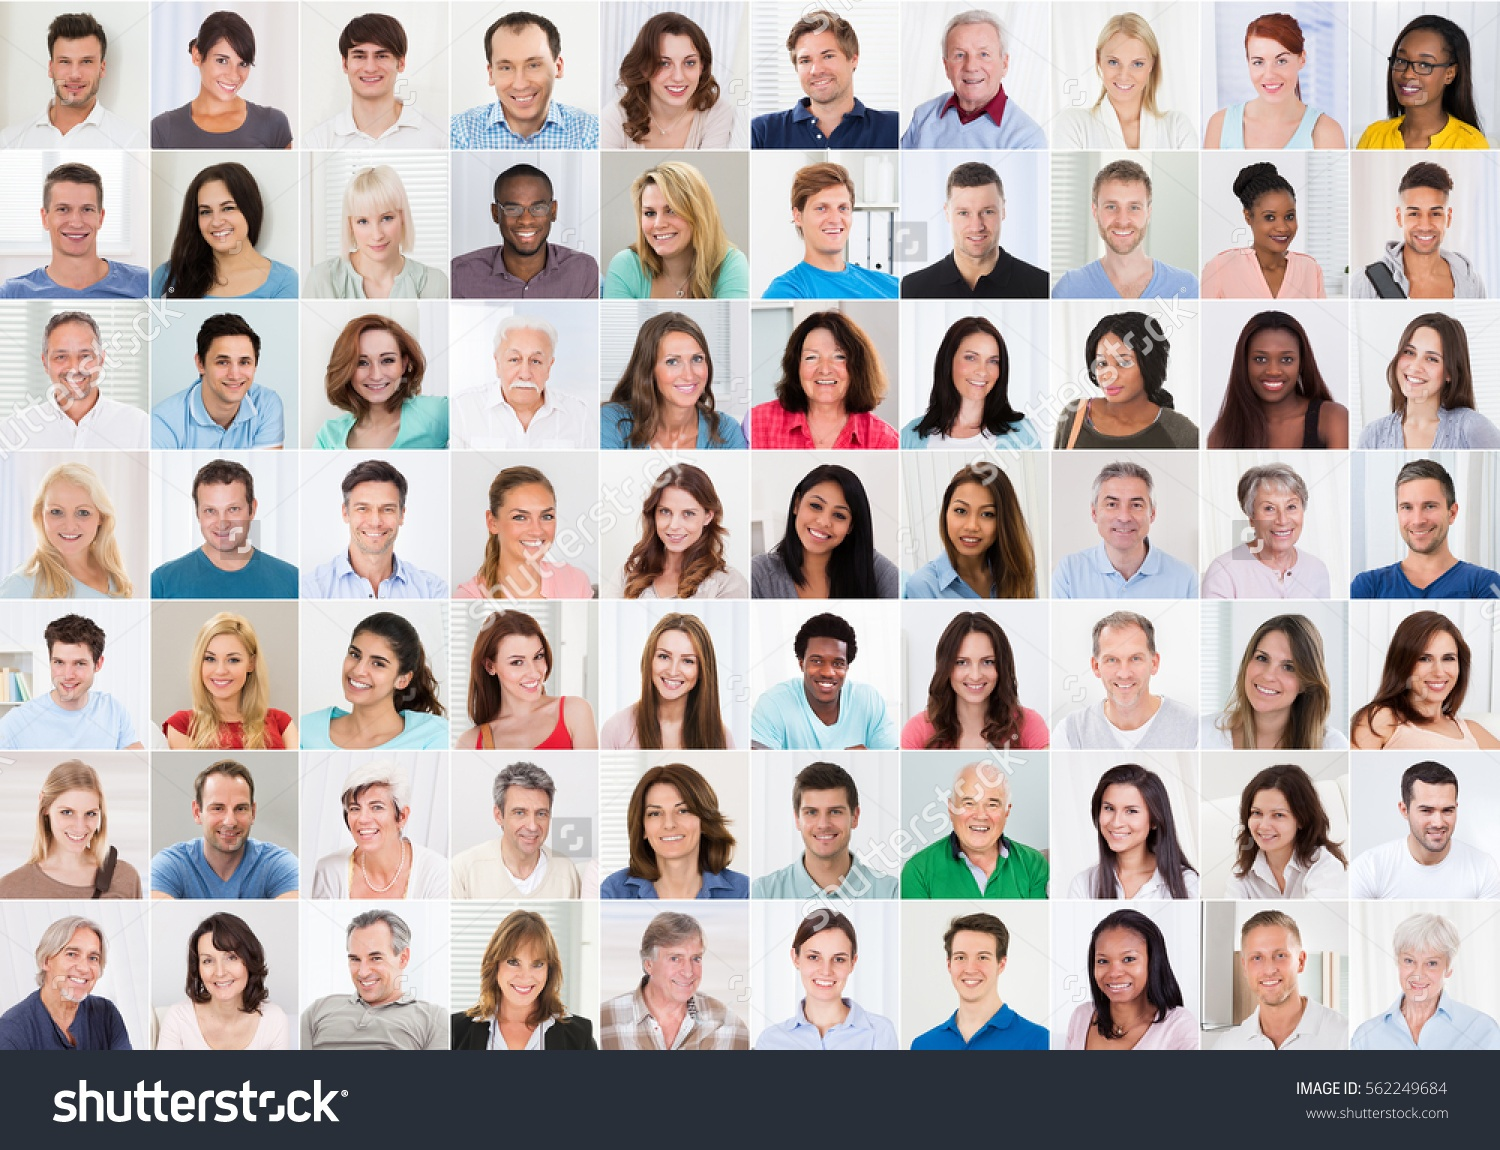 stock-photo-collage-of-smiling-multiethnic-people-portraits-and-faces-562249684